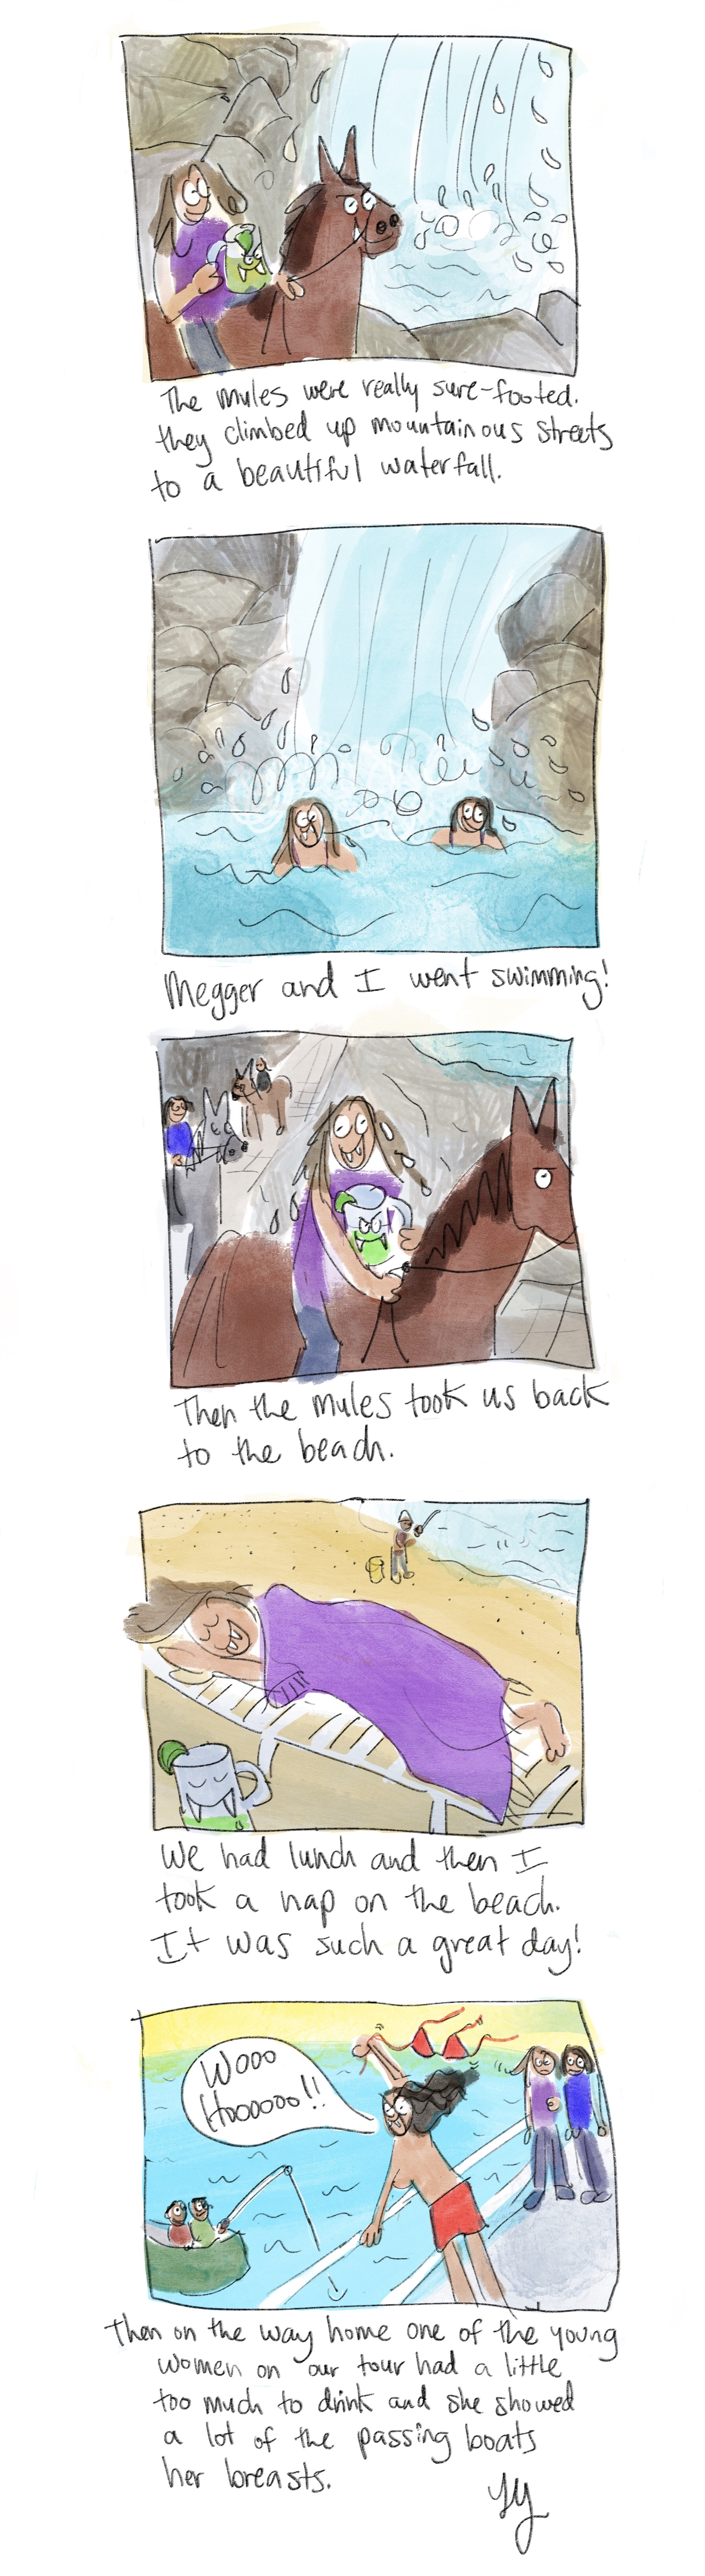 I drew this comic of our mule trek to a waterfall in Yelapa, Mexico. We went swimming in the waterfall. It was so great. Then we went back to the beach and had lunch and a nap. Then on the boat ride home one of the women on our tour took off her top and started flashing passing boats.